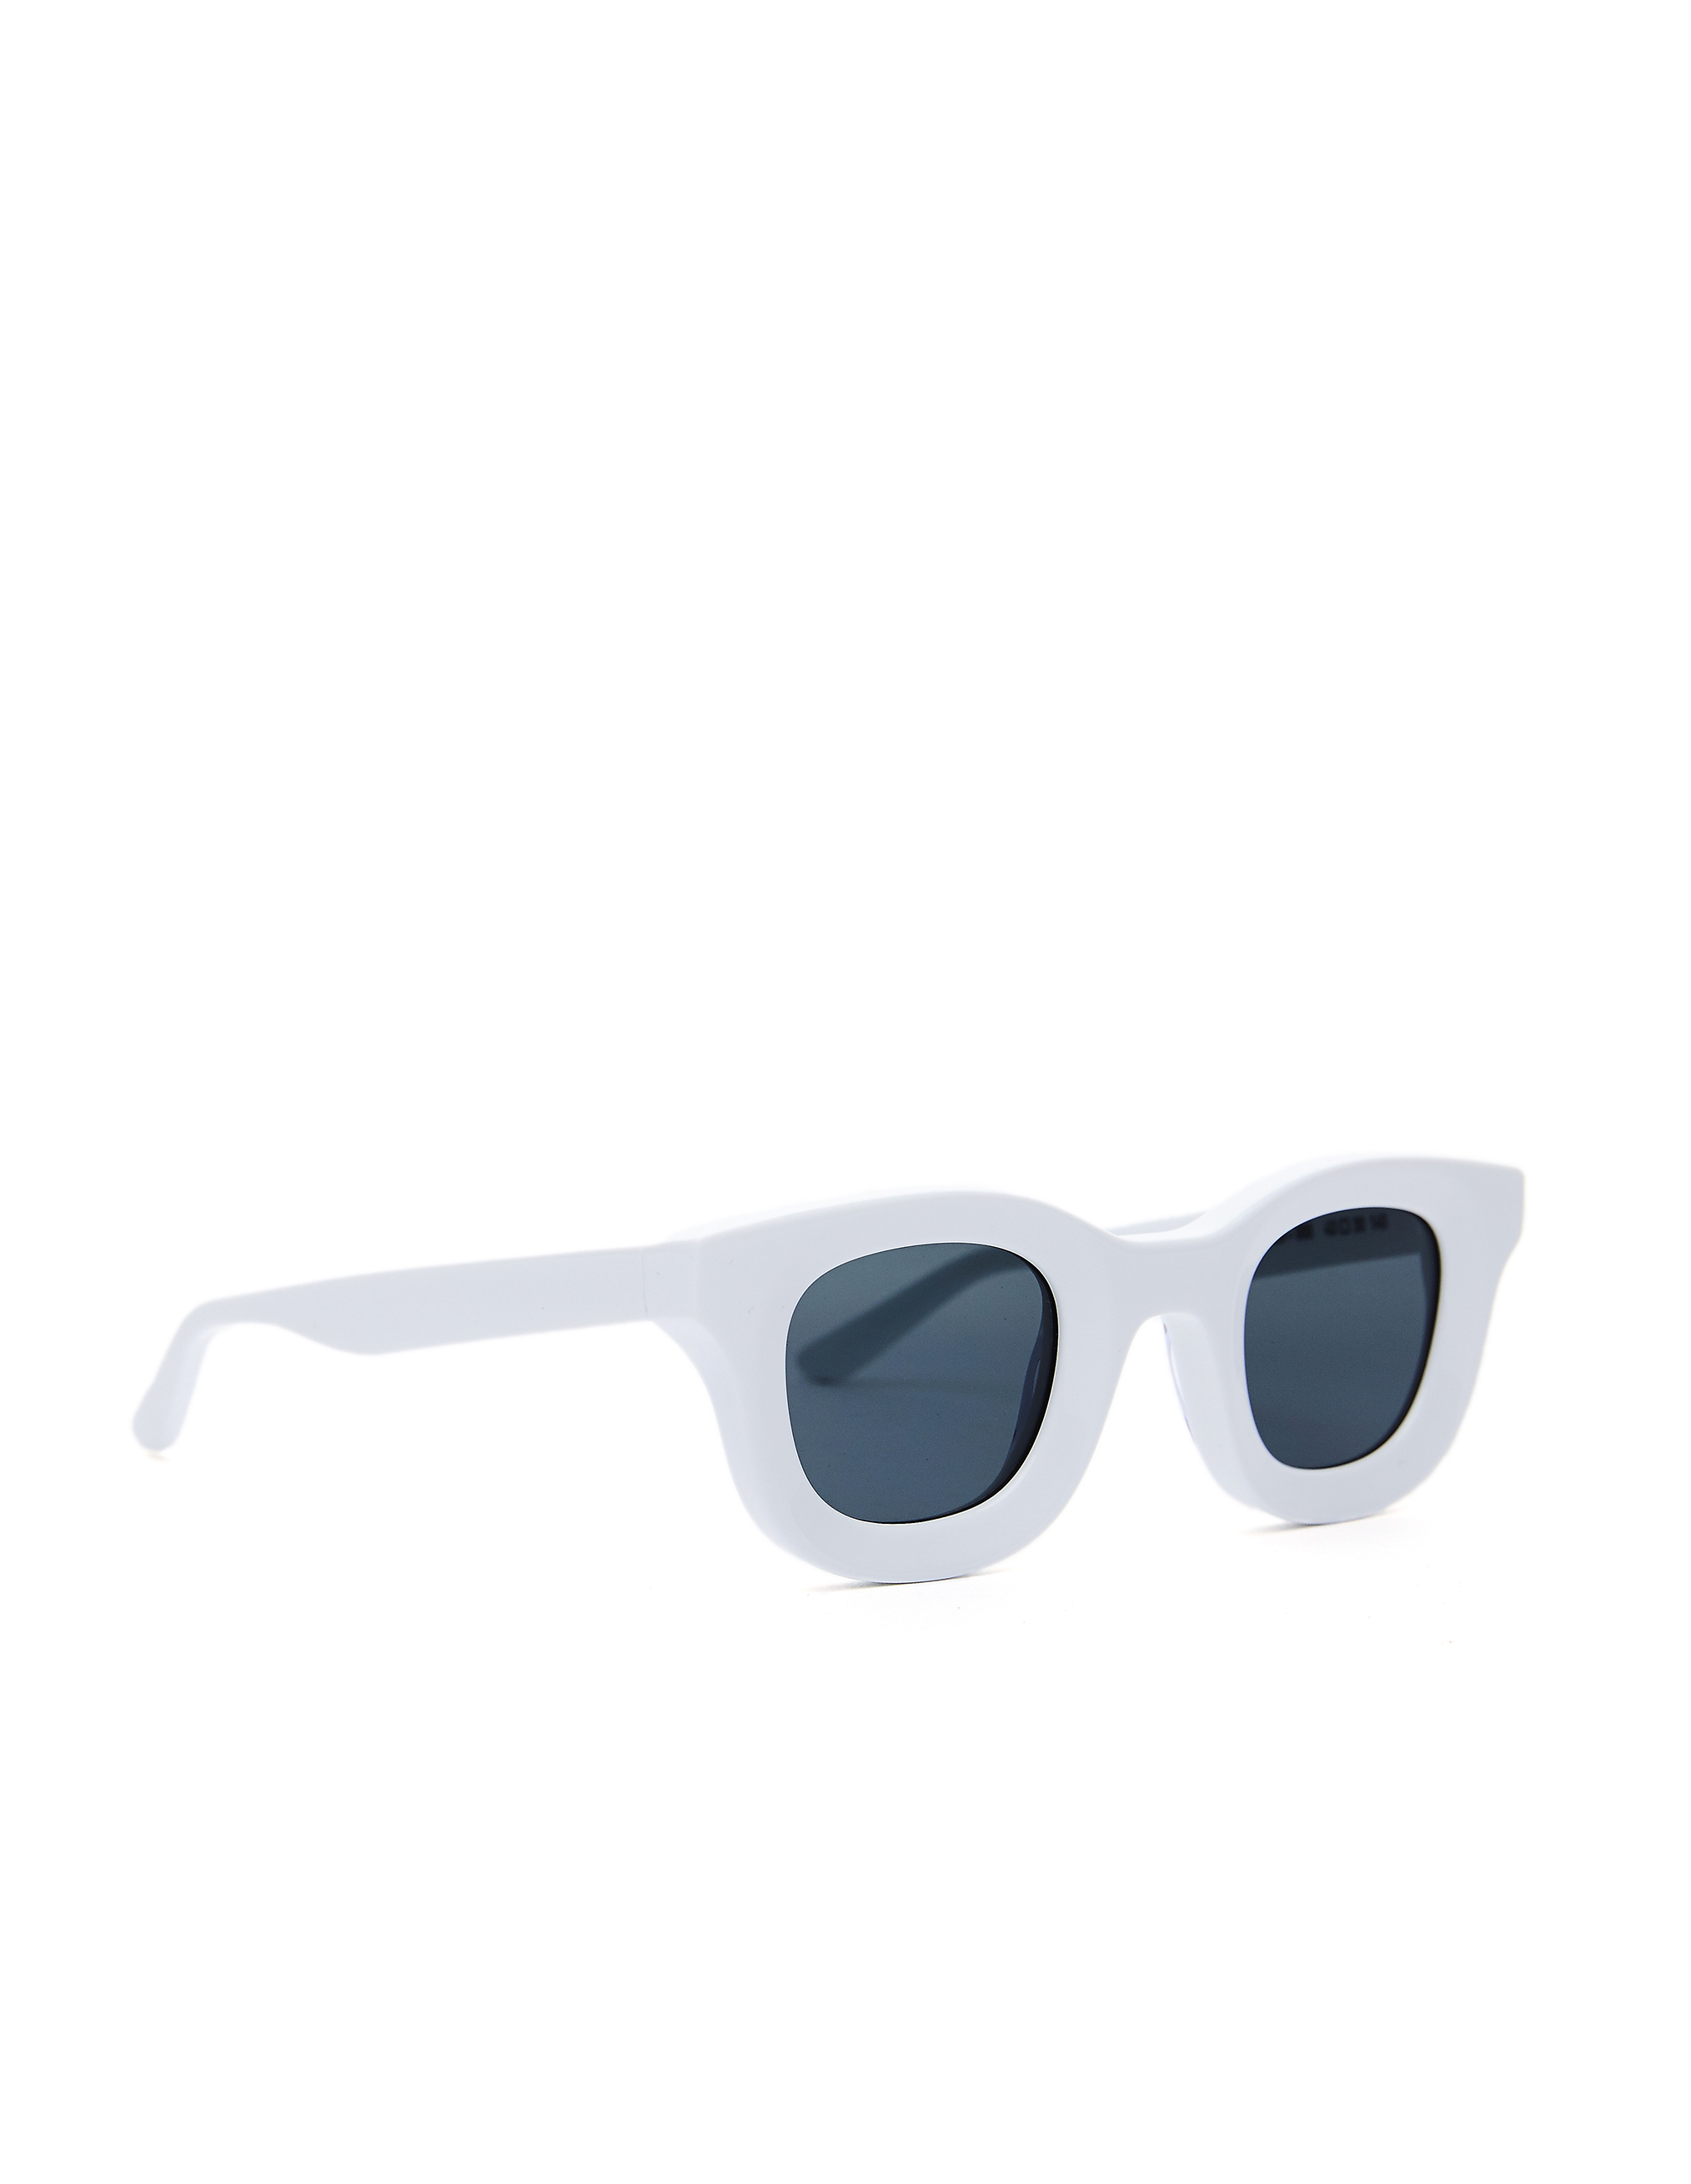 Thierry Lasry Thierry Lasry x Rhude White 'Rhodeo' Sunglasses